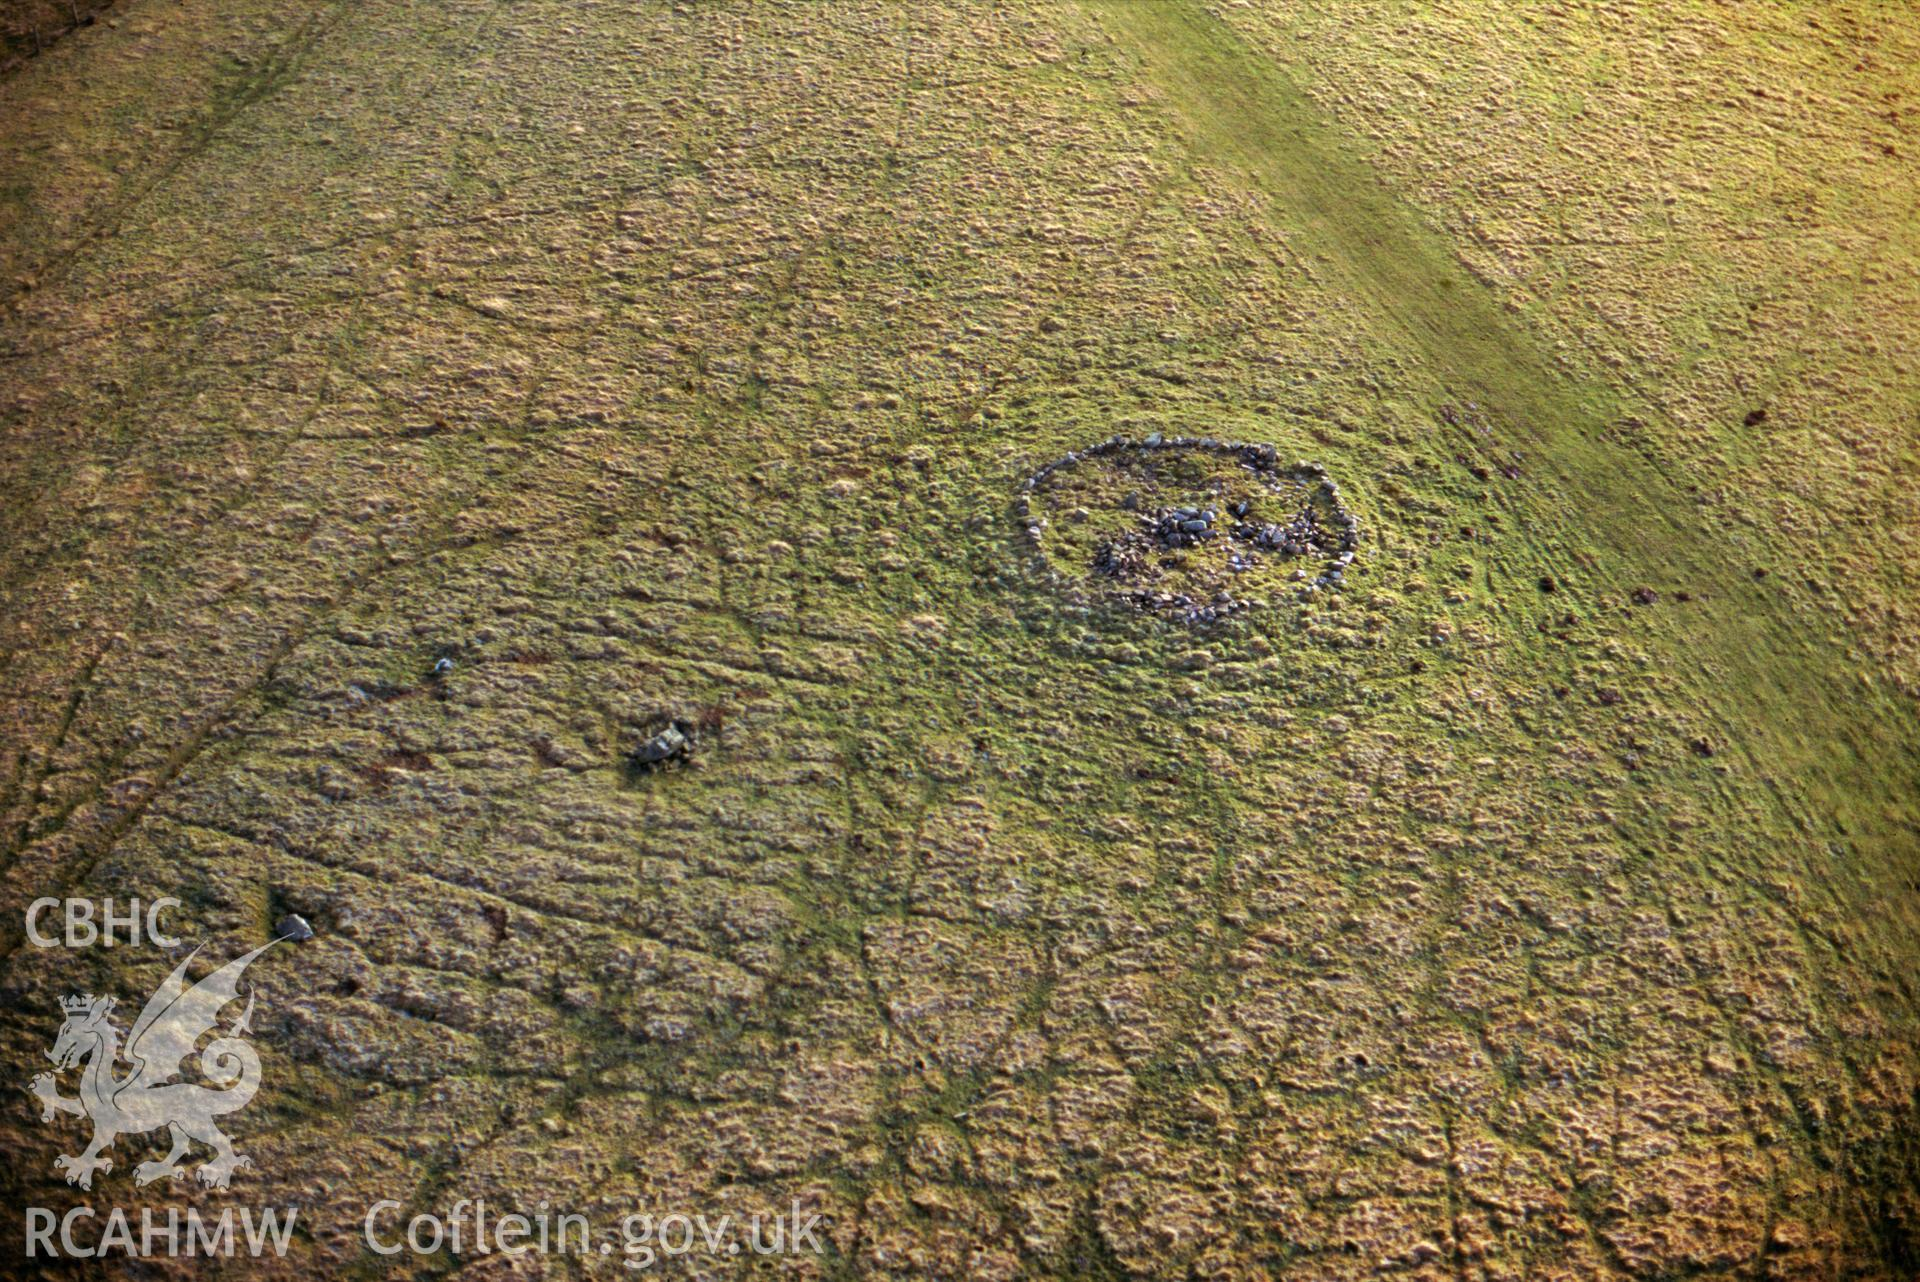 RCAHMW colour slide oblique aerial photograph of Fowlers Arm Chair Stone Circle, Abbey Cwmhir, taken on 20/12/1998 by CR Musson